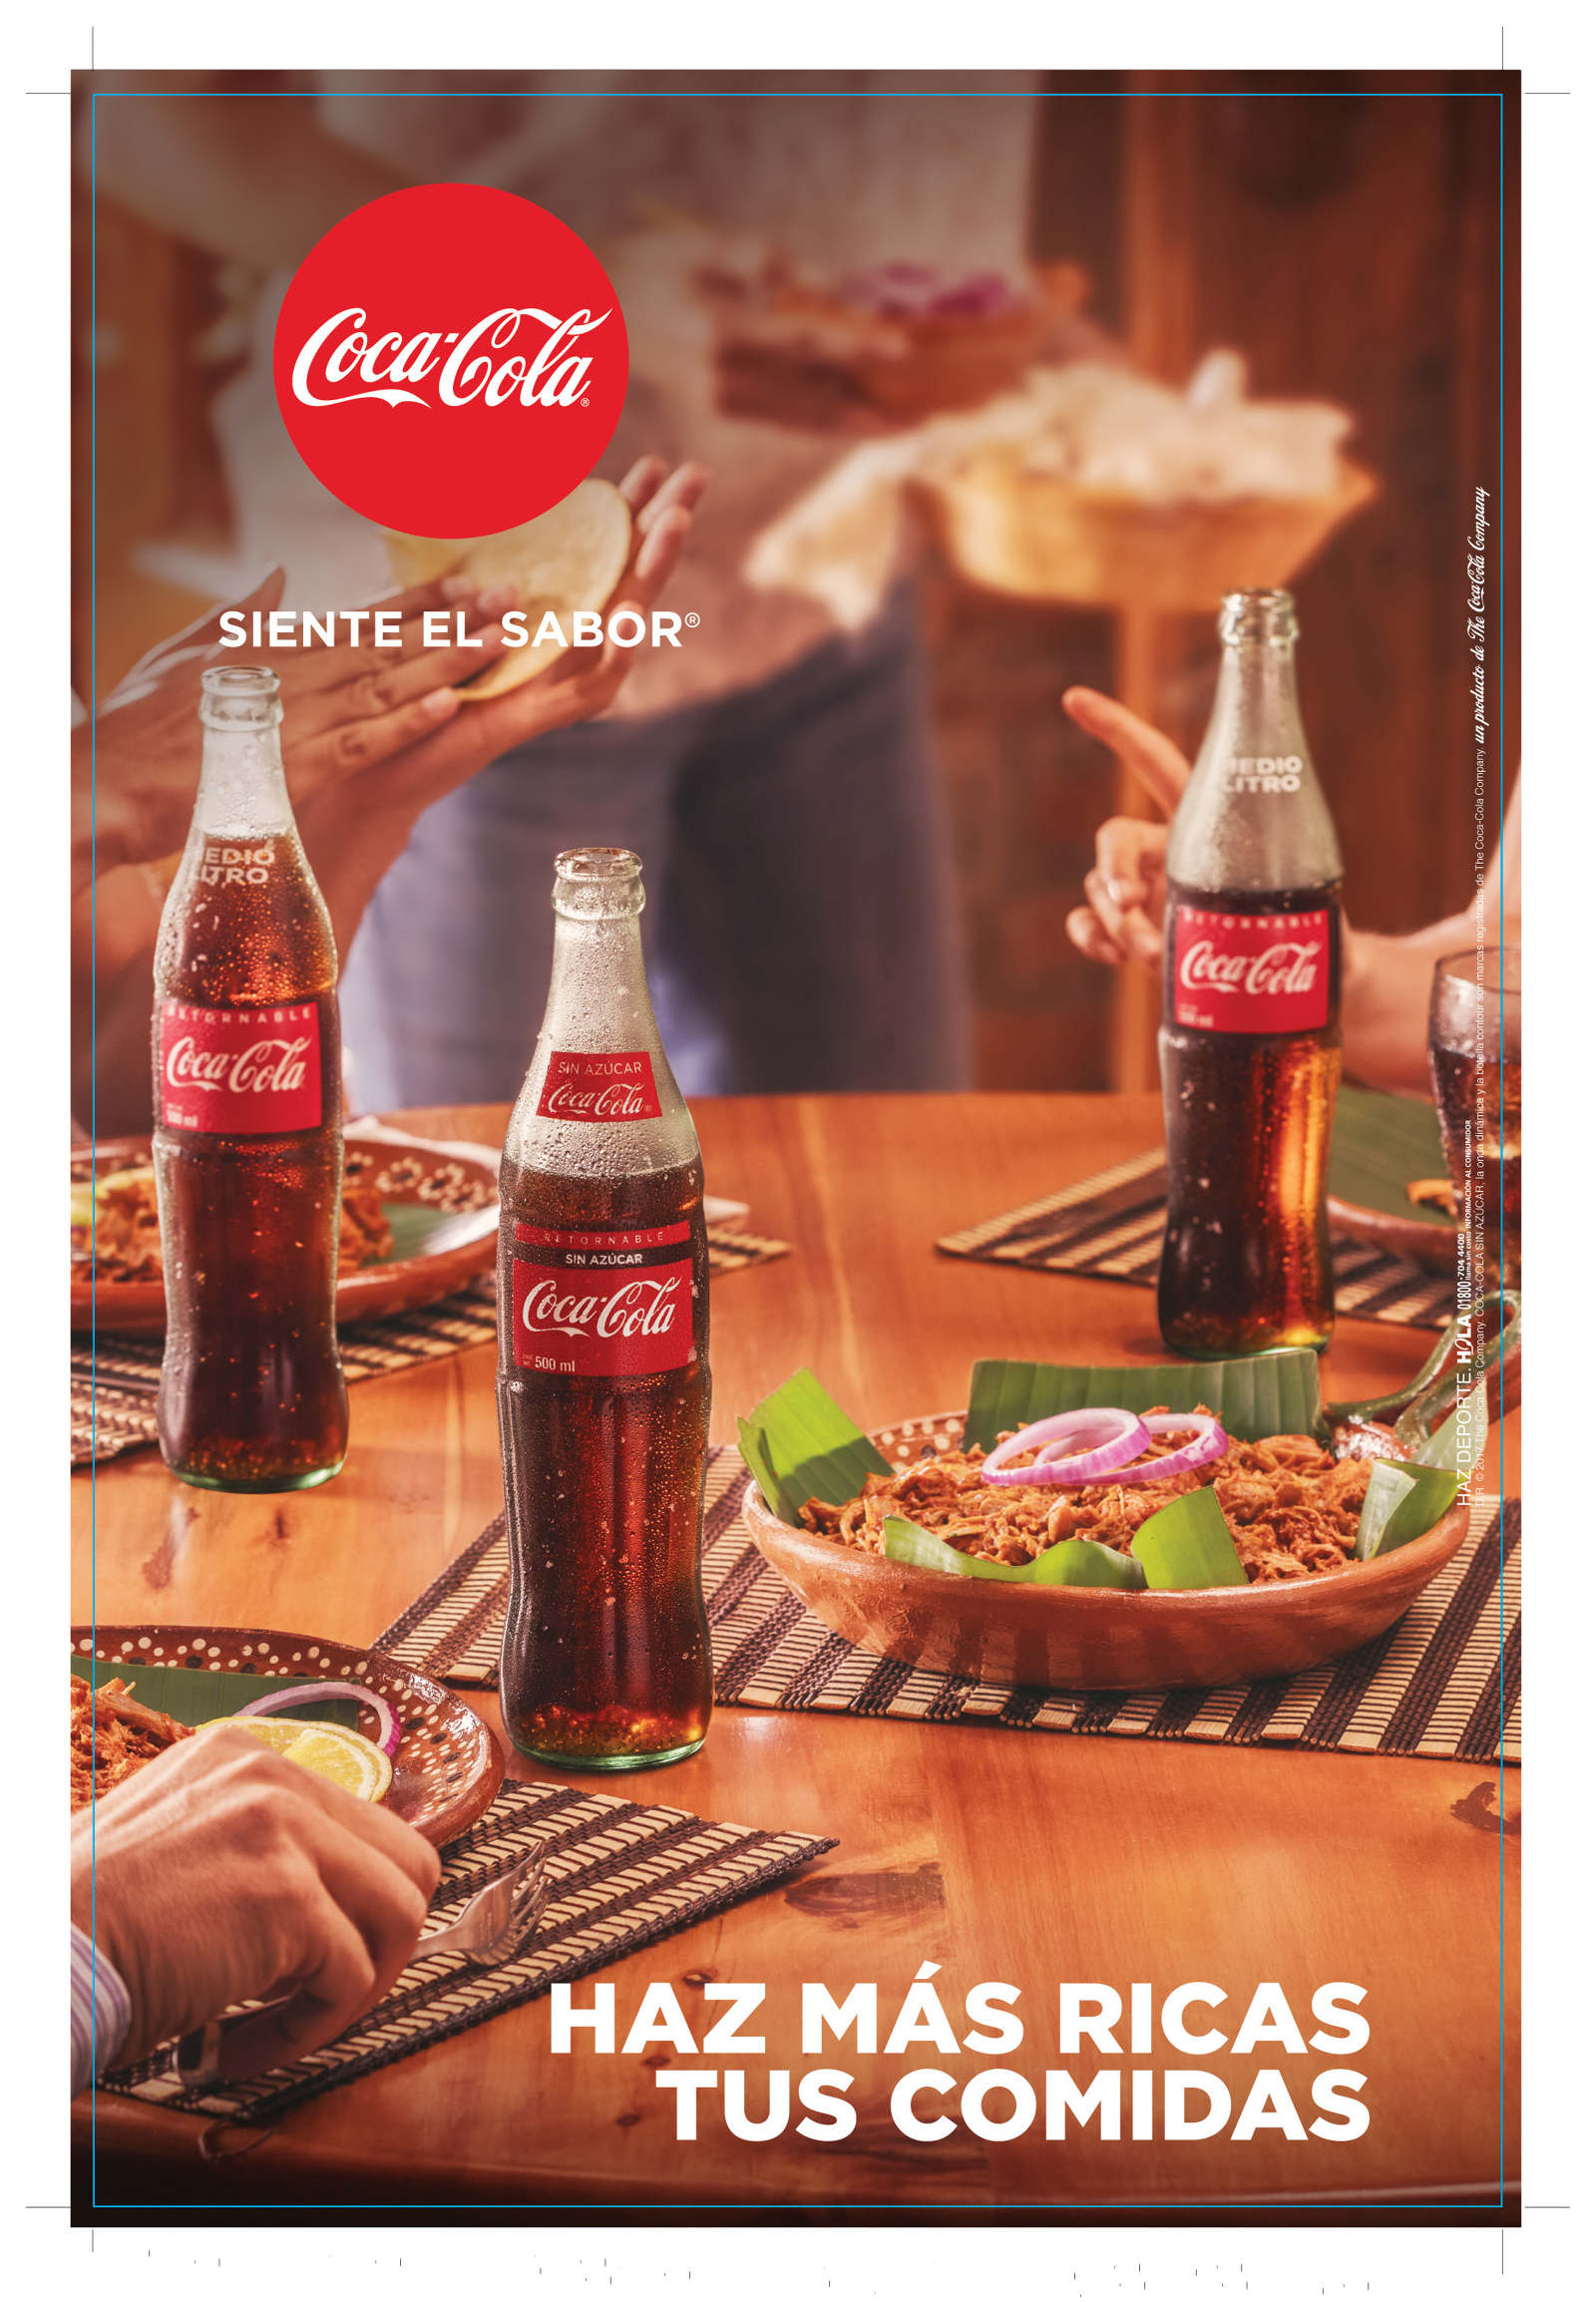 coca-cola goes well with food - Miguel Centeno